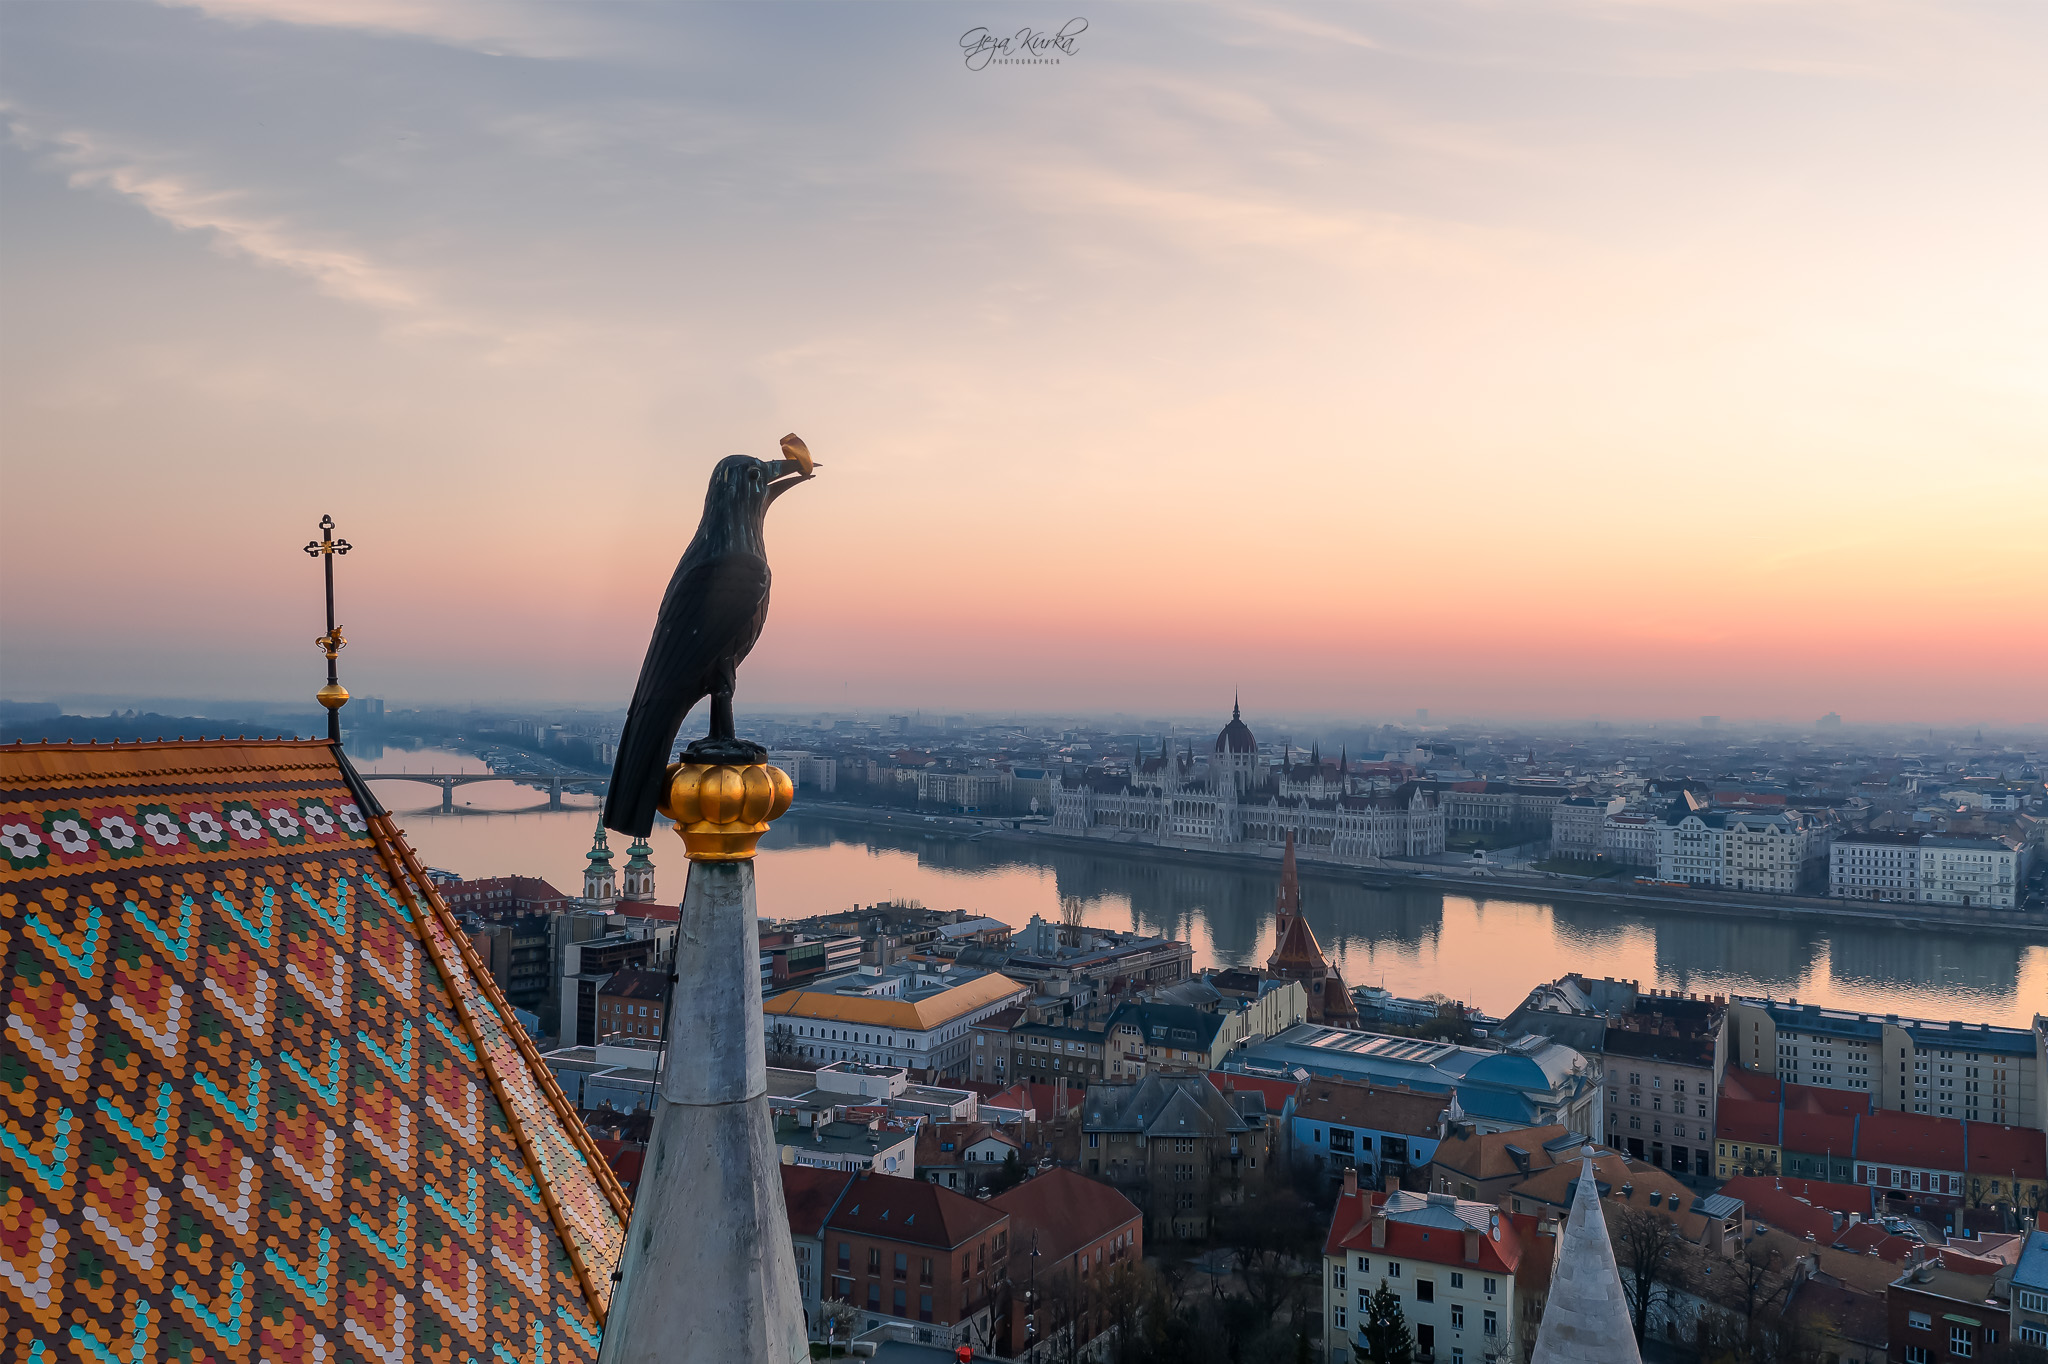 Raven with ring. Part of the Matthias Church, Hungary